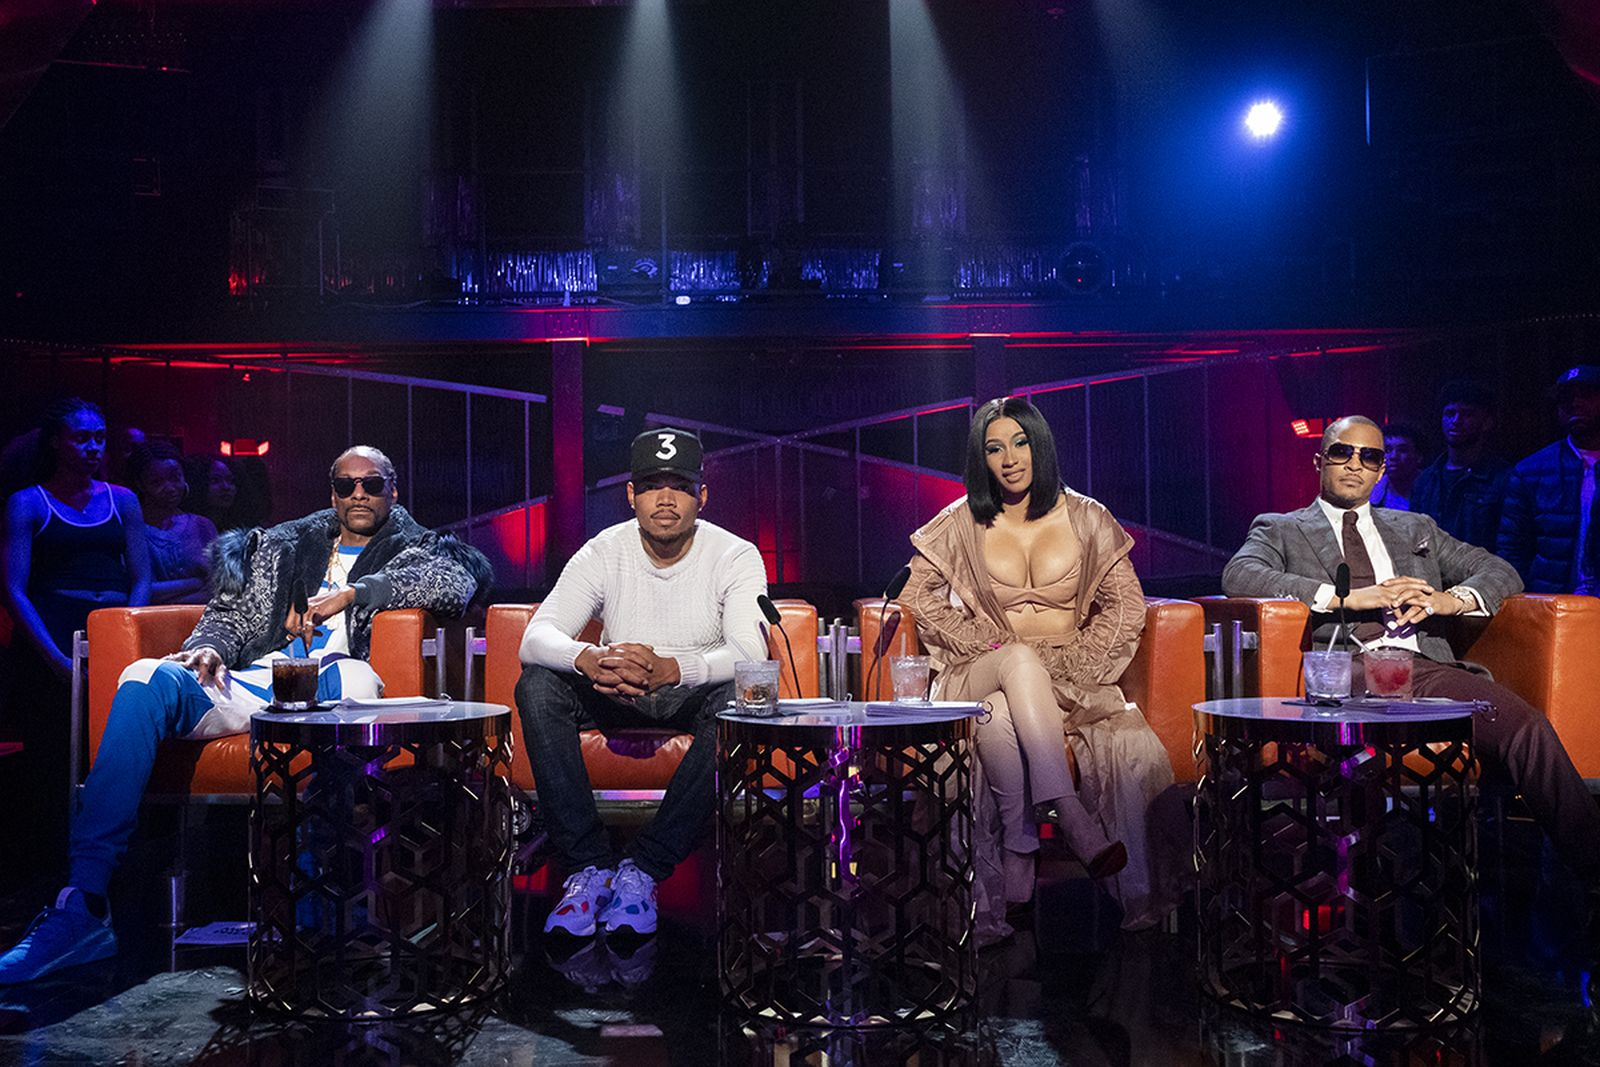 Snoop Doggy Dogg, Chance The Rapper, Cardi B, T.I. on Rhythm and Flow